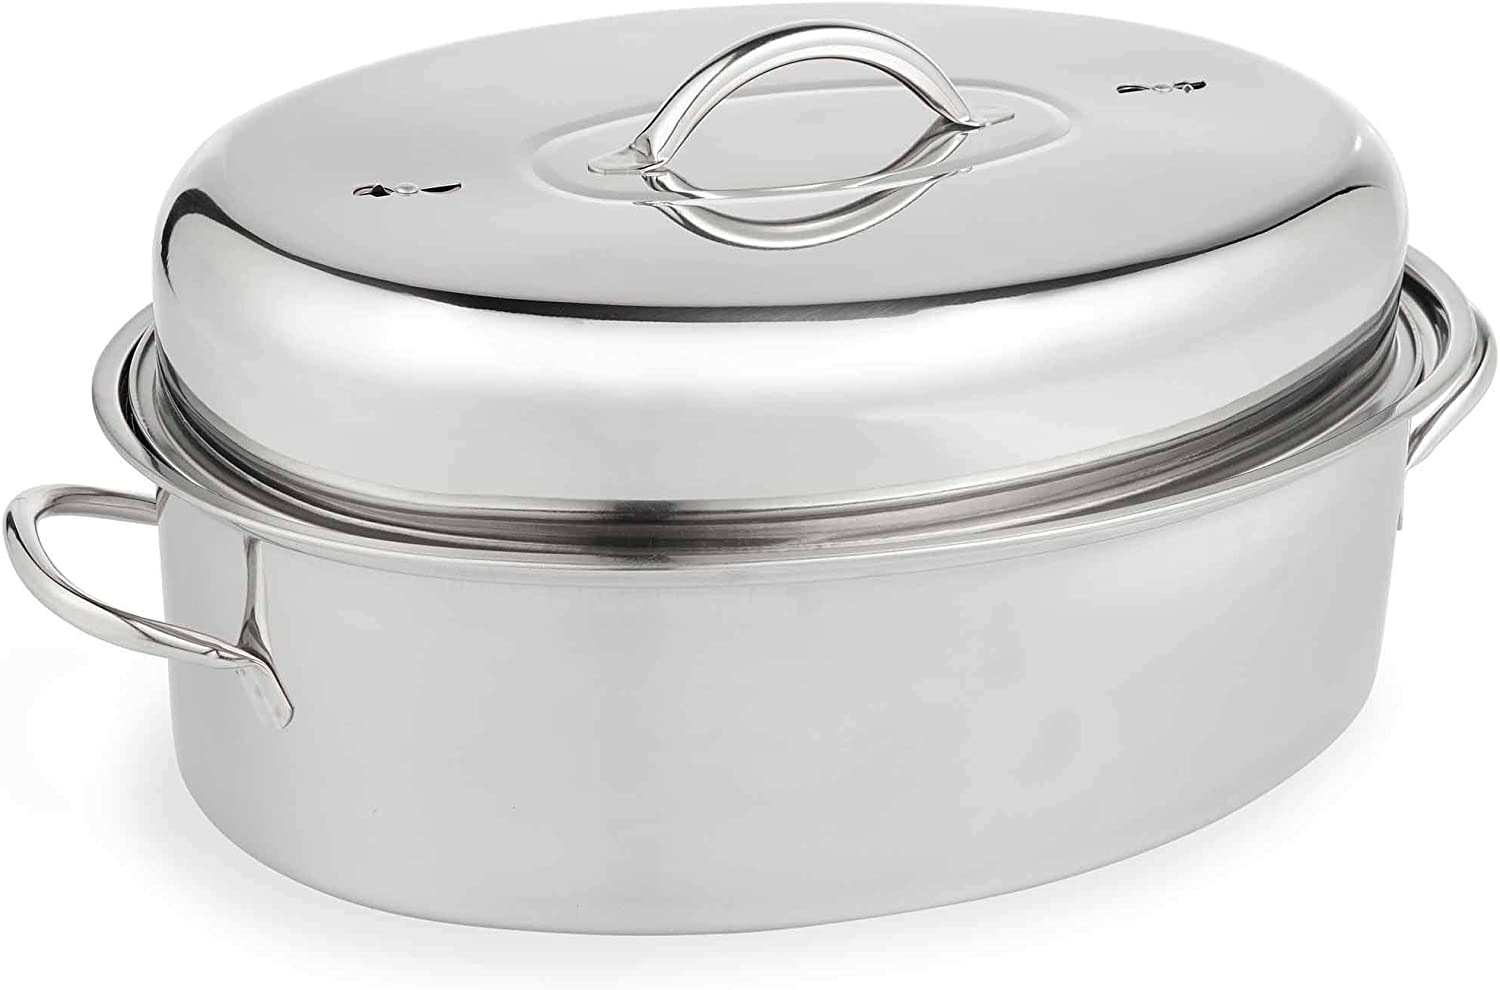 VonShef Stainless Steel Lidded Roasting Pan, Lightweight Roaster Extra Large Dish for Chicken Turkey Meat Joints Vegetables, 9.5 Quart Capacity